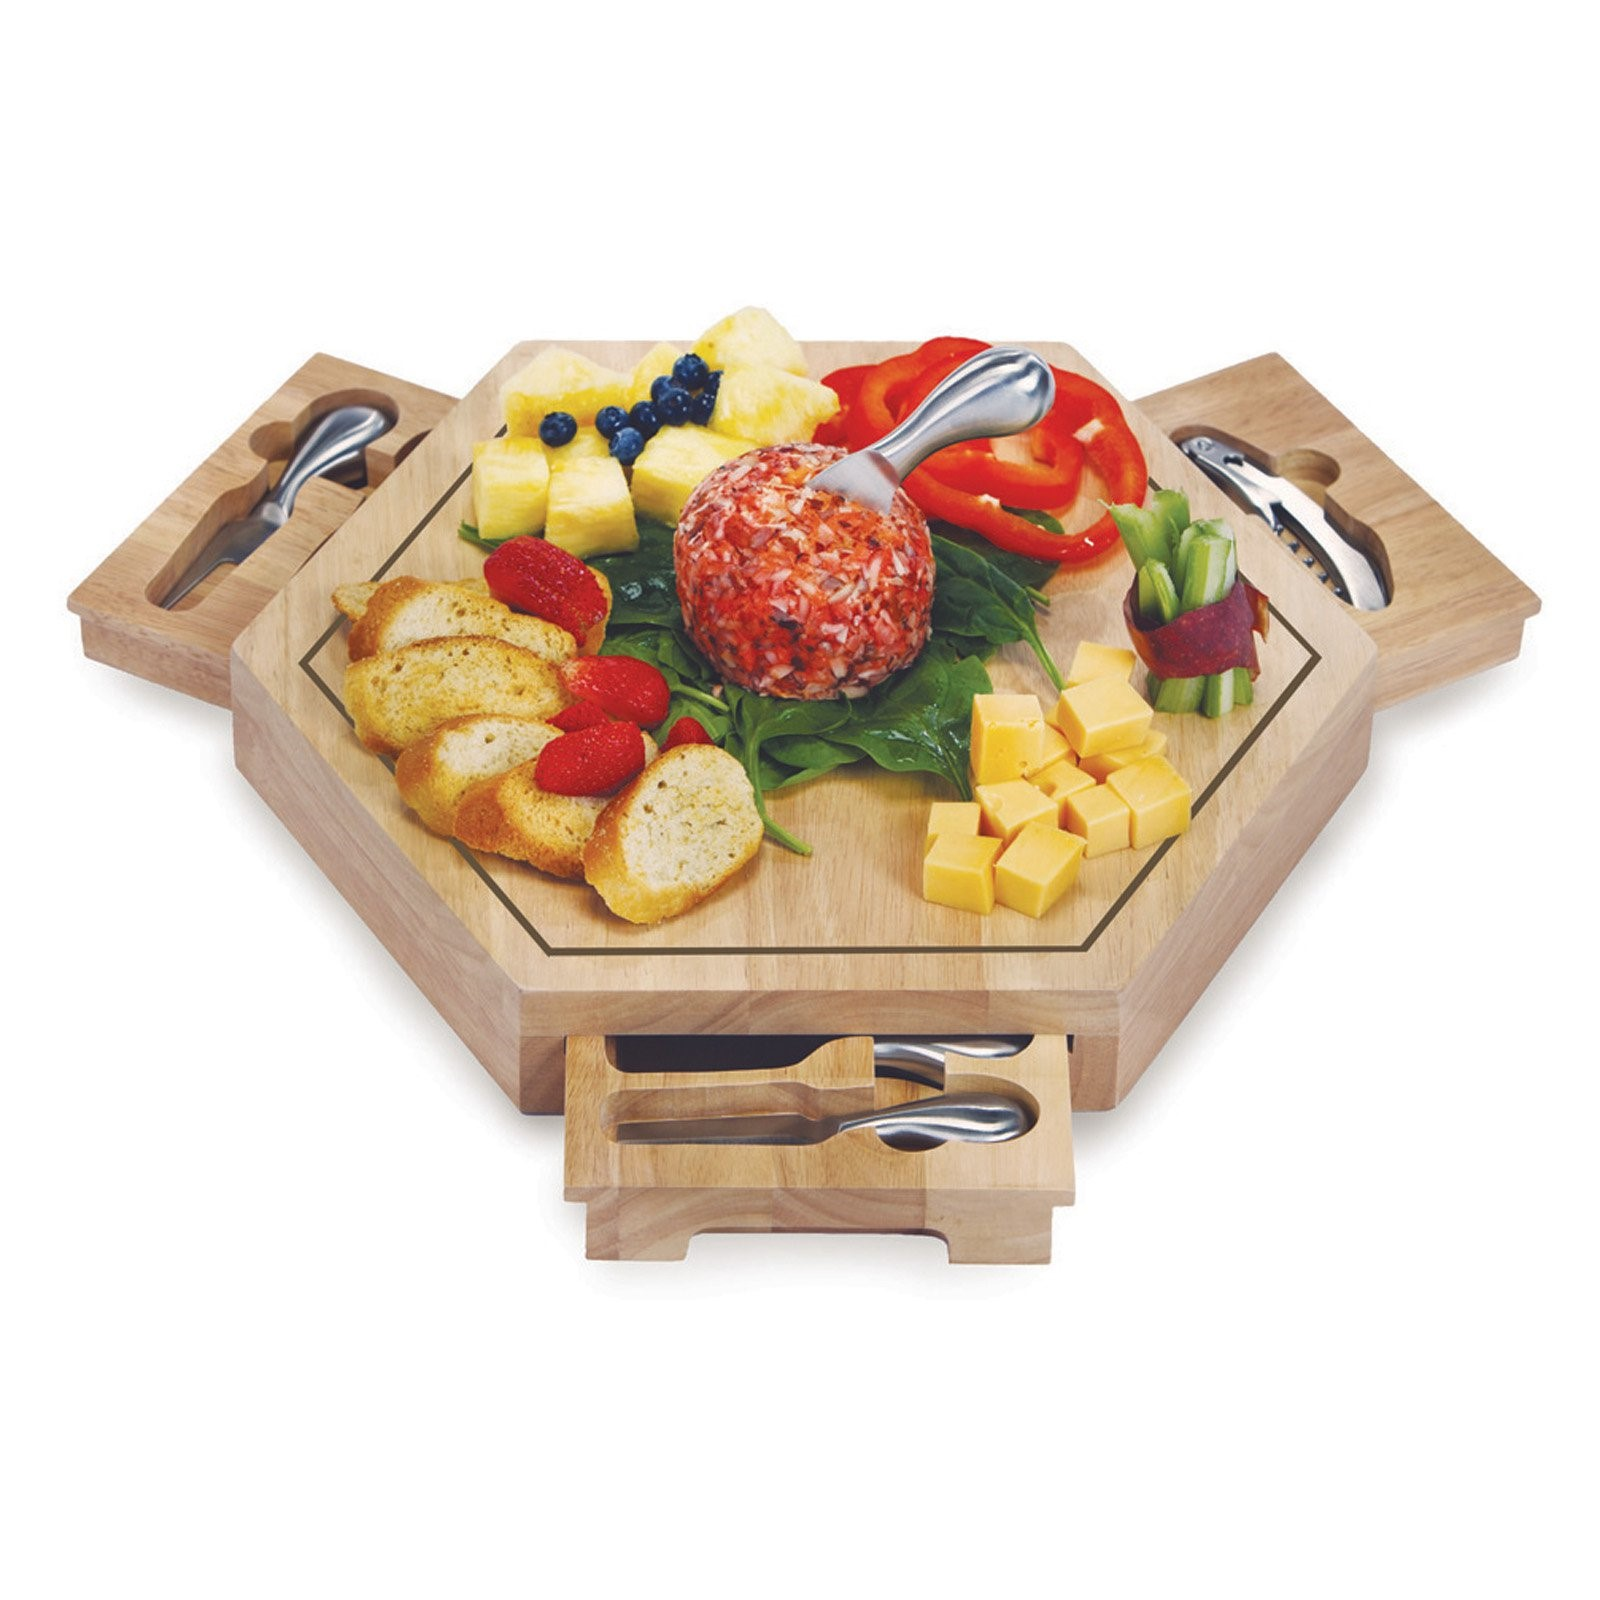 8 Picnic Plus Bergamo Cheese Board - Look like the hostess with the most-est thanks to this hexagon-shaped cheese board with a natural wood grain finish. Unlike most cheese displays, this one features three magnetic pull-out drawers that are perfect for storing utensils.